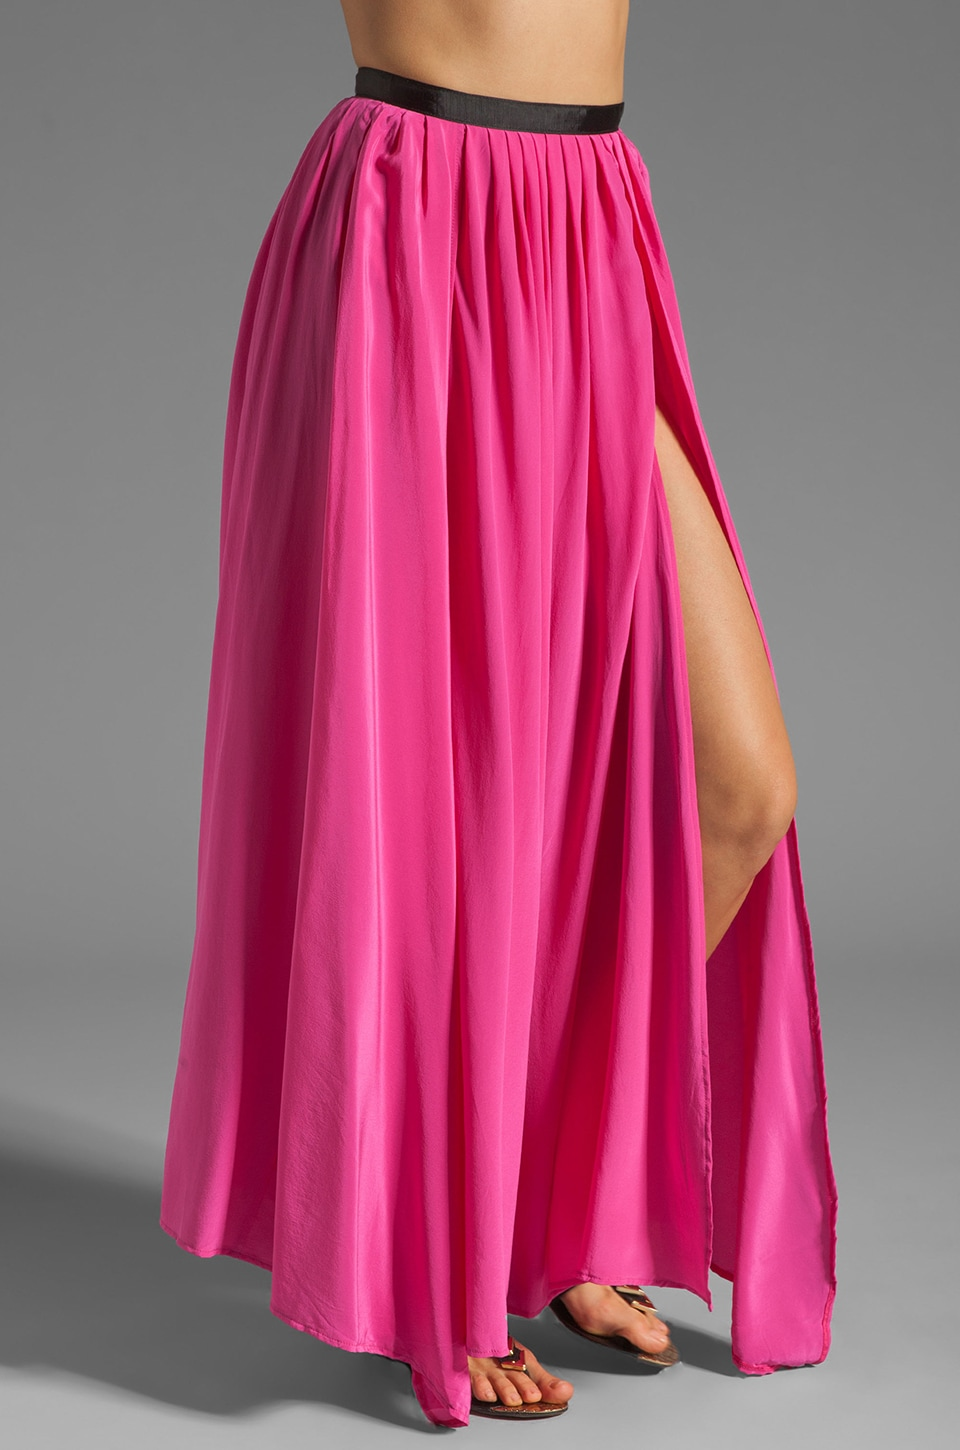 Gypsy Junkies Oceana High Slit Maxi Skirt in Pink